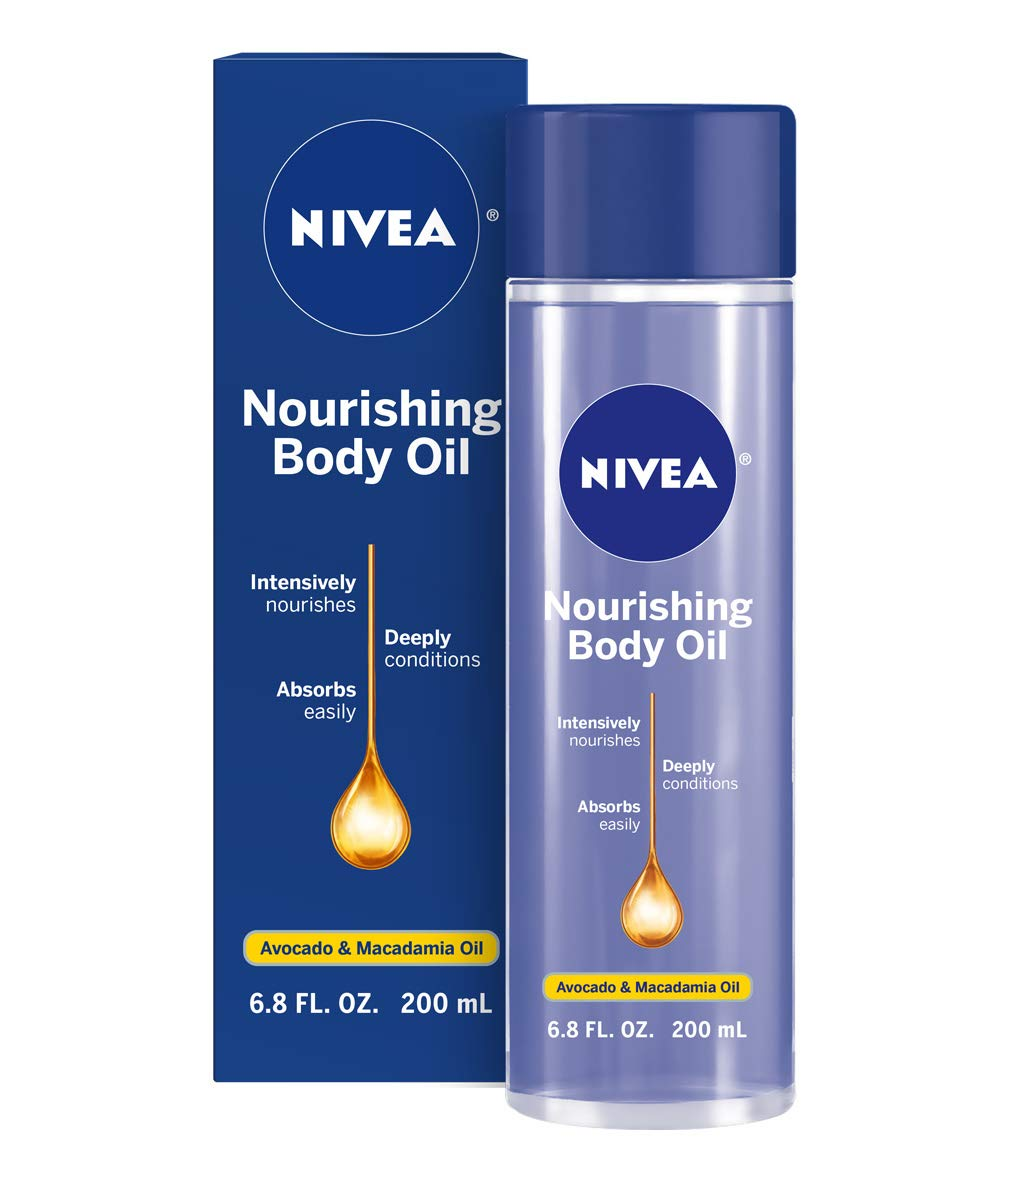 NIVEA Nourishing Body Oil 6.8 fl oz by Nivea